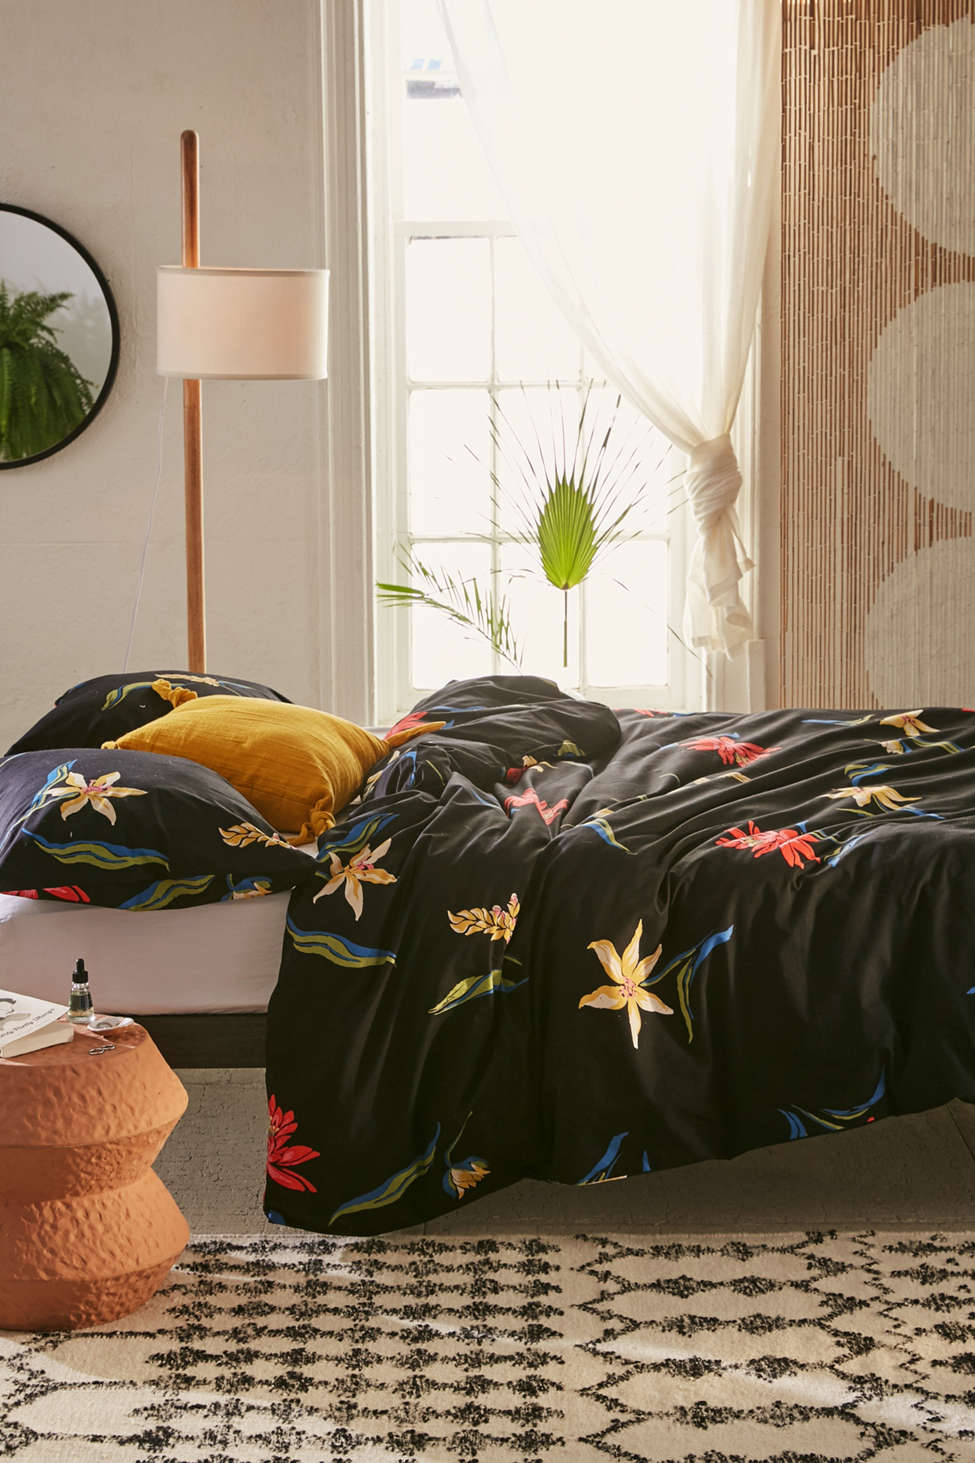 Slide View: 1: Tossed Tropical Duvet Cover